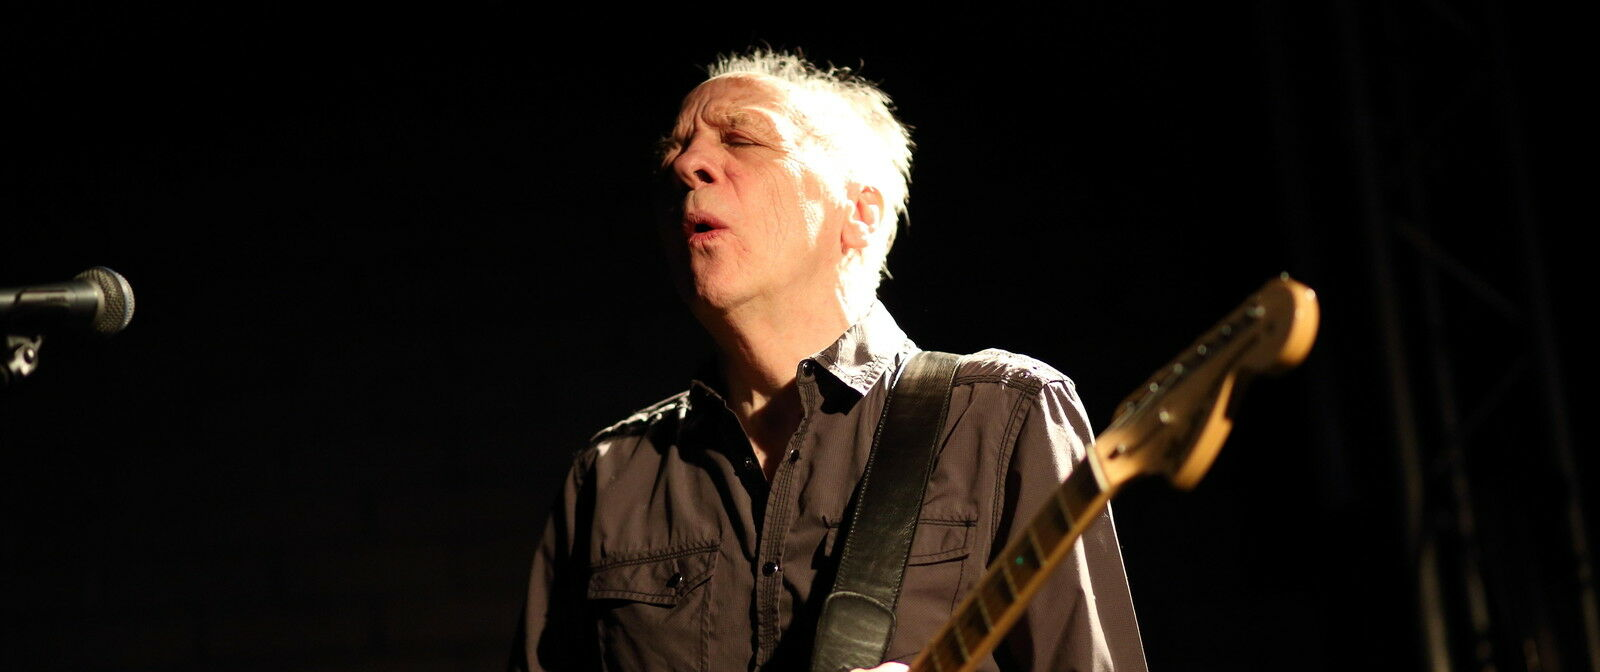 Robin Trower Tickets (18+ Event)